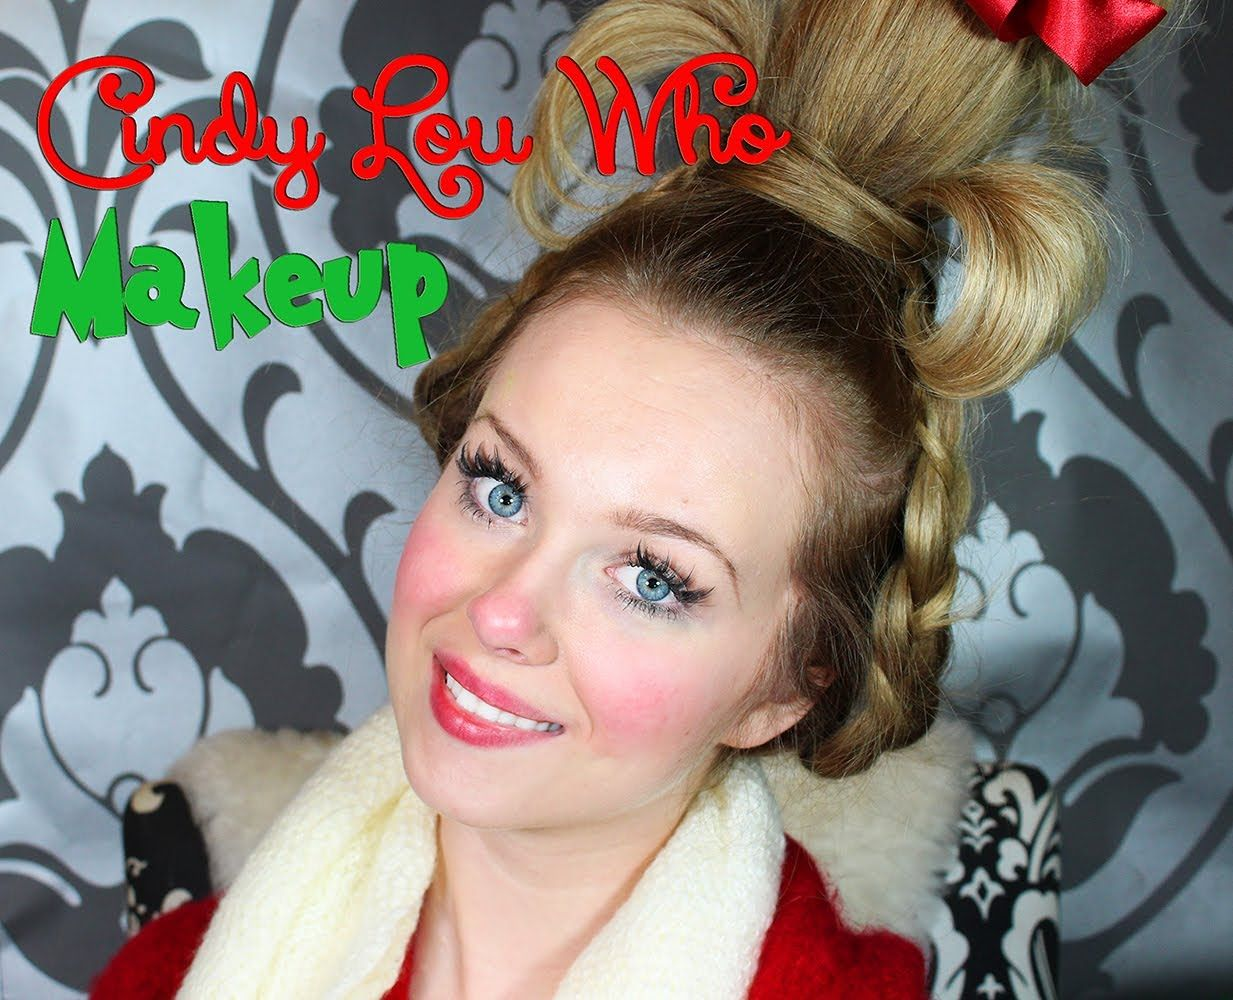 How to make your own grinch costume - Cindy Lou Who The Grinch Who Stole Christmas Makeup Tutorial